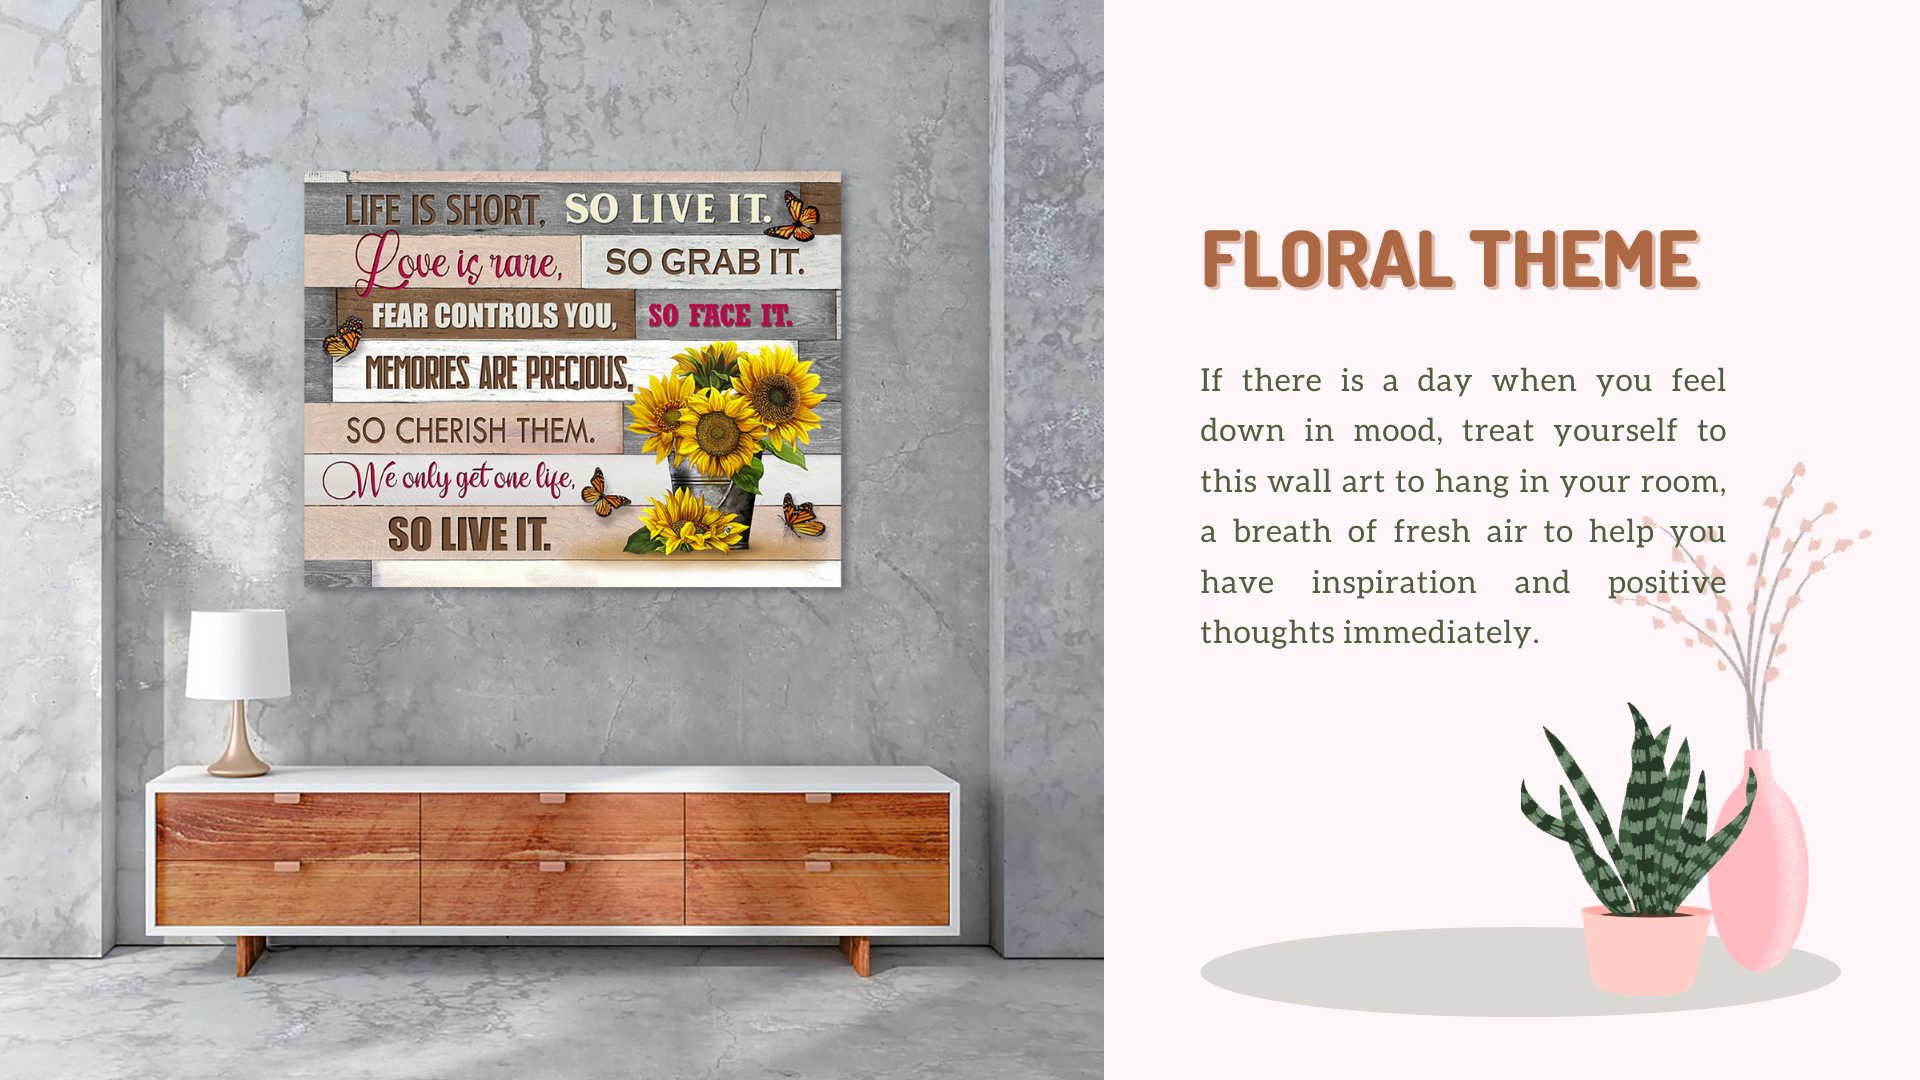 Life is short so live it meaningful wall art floral theme decor idea from stunning gift store